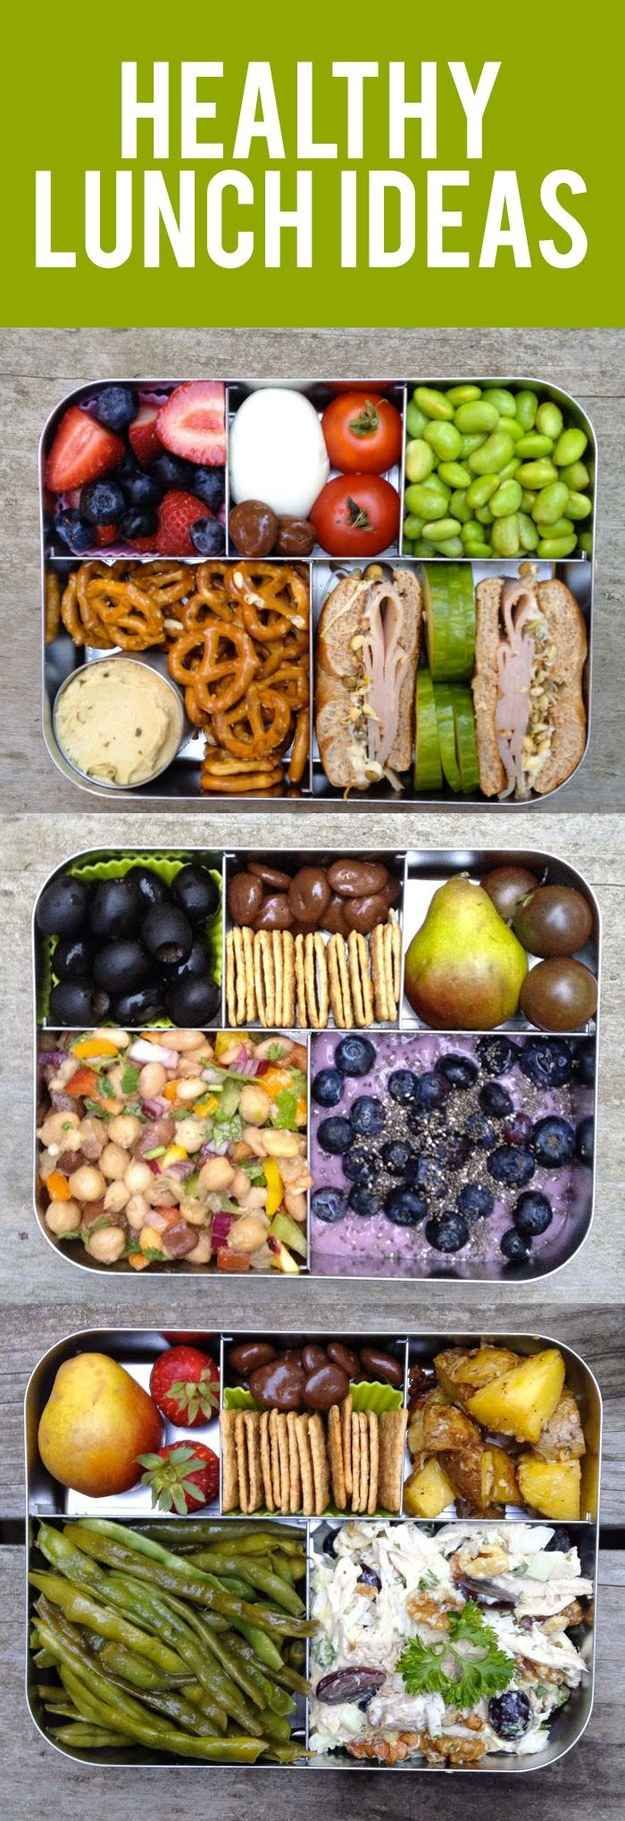 Healthy lunches in cute packaging will make work easier and more delicious.  http://www.buzzfeed.com/lindsayhunt/crystal-pinterest-ball?utm_medium=email